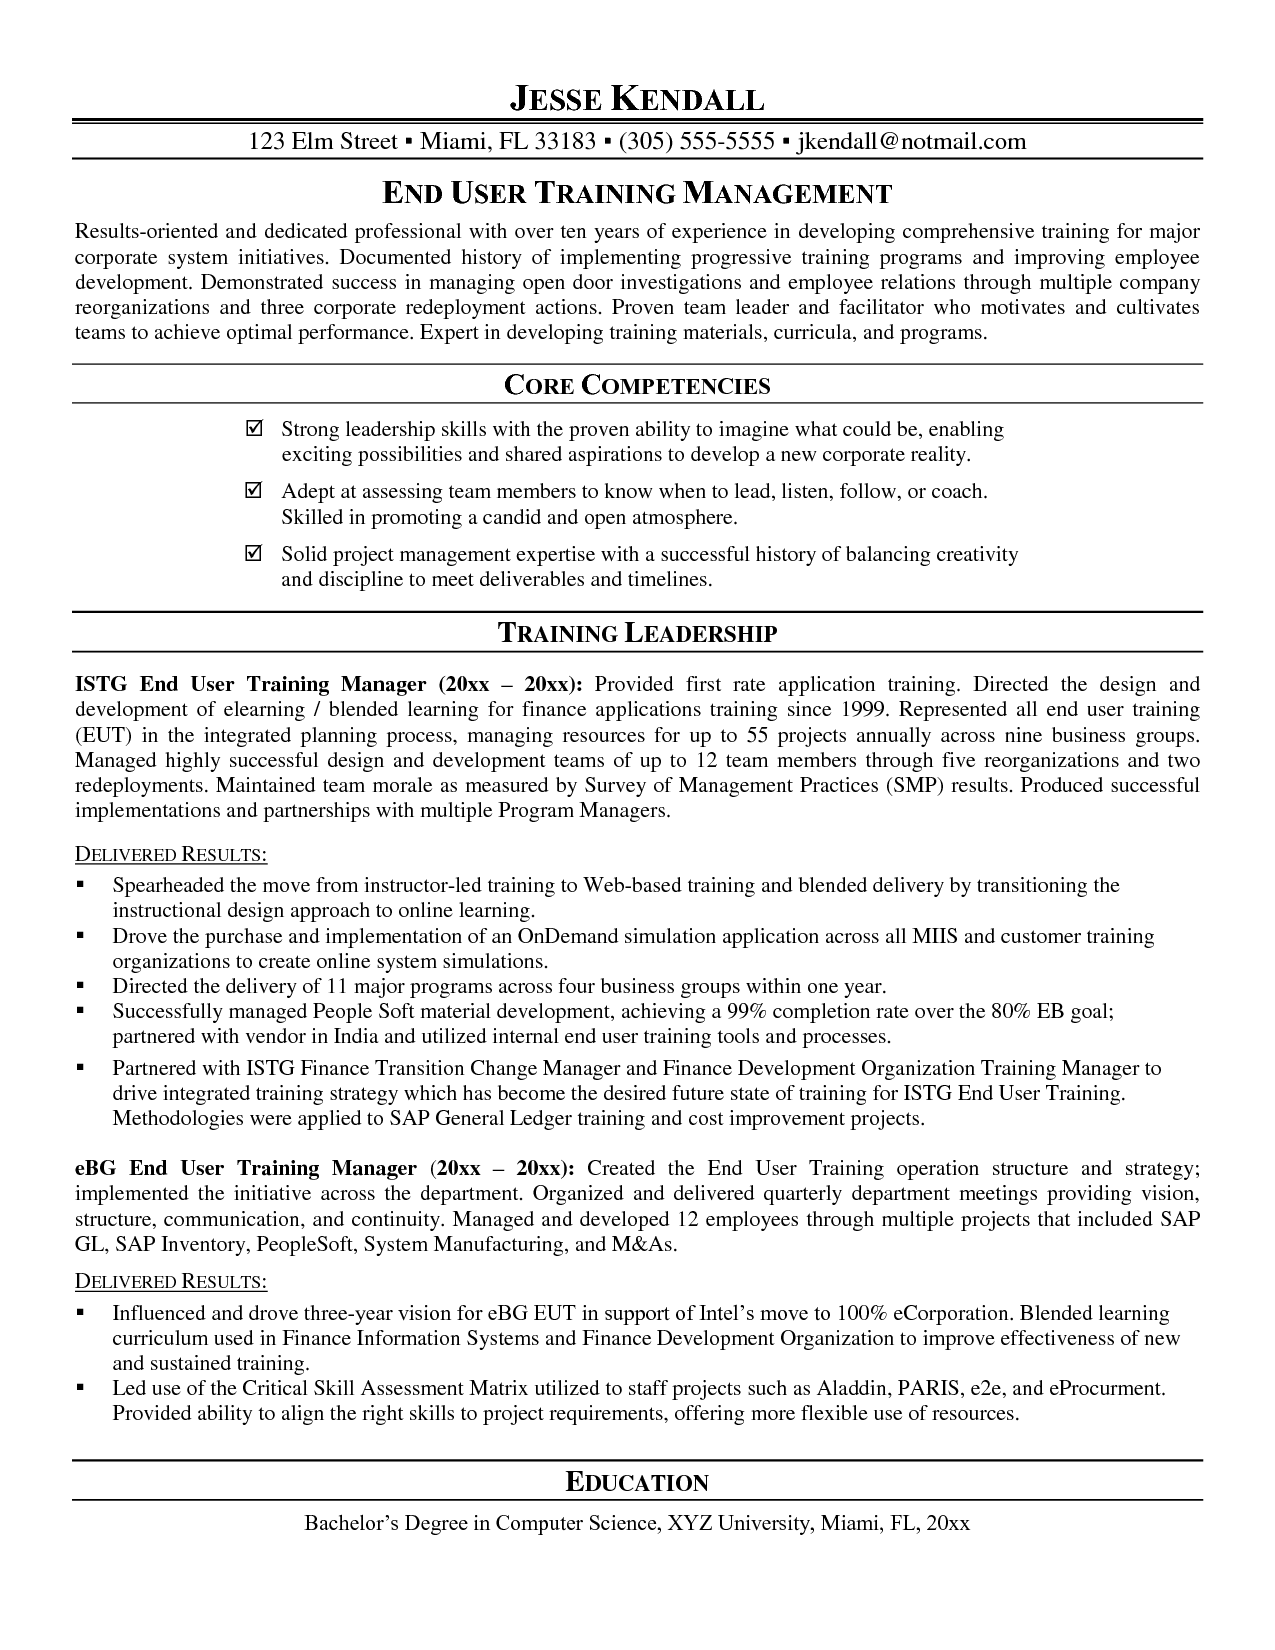 Nurse Manager Resume Training Manager Resume  Httpwwwresumecareertraining